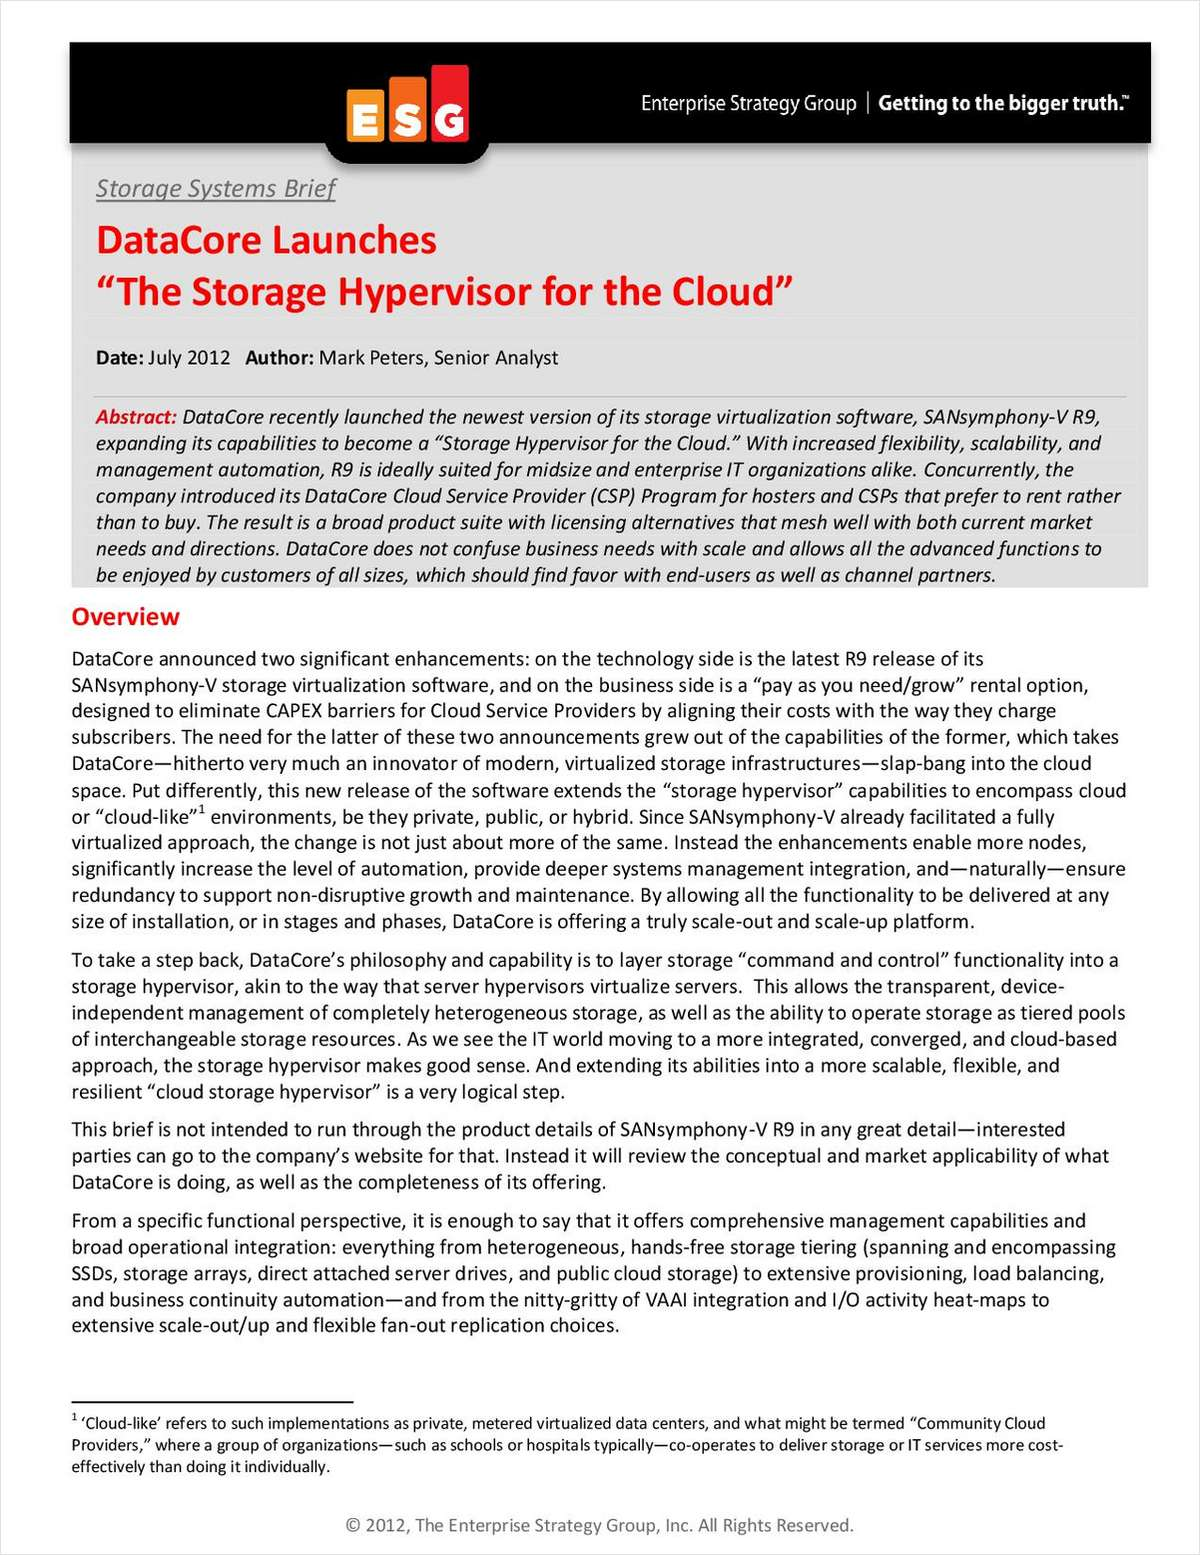 The Storage Hypervisor for the Cloud